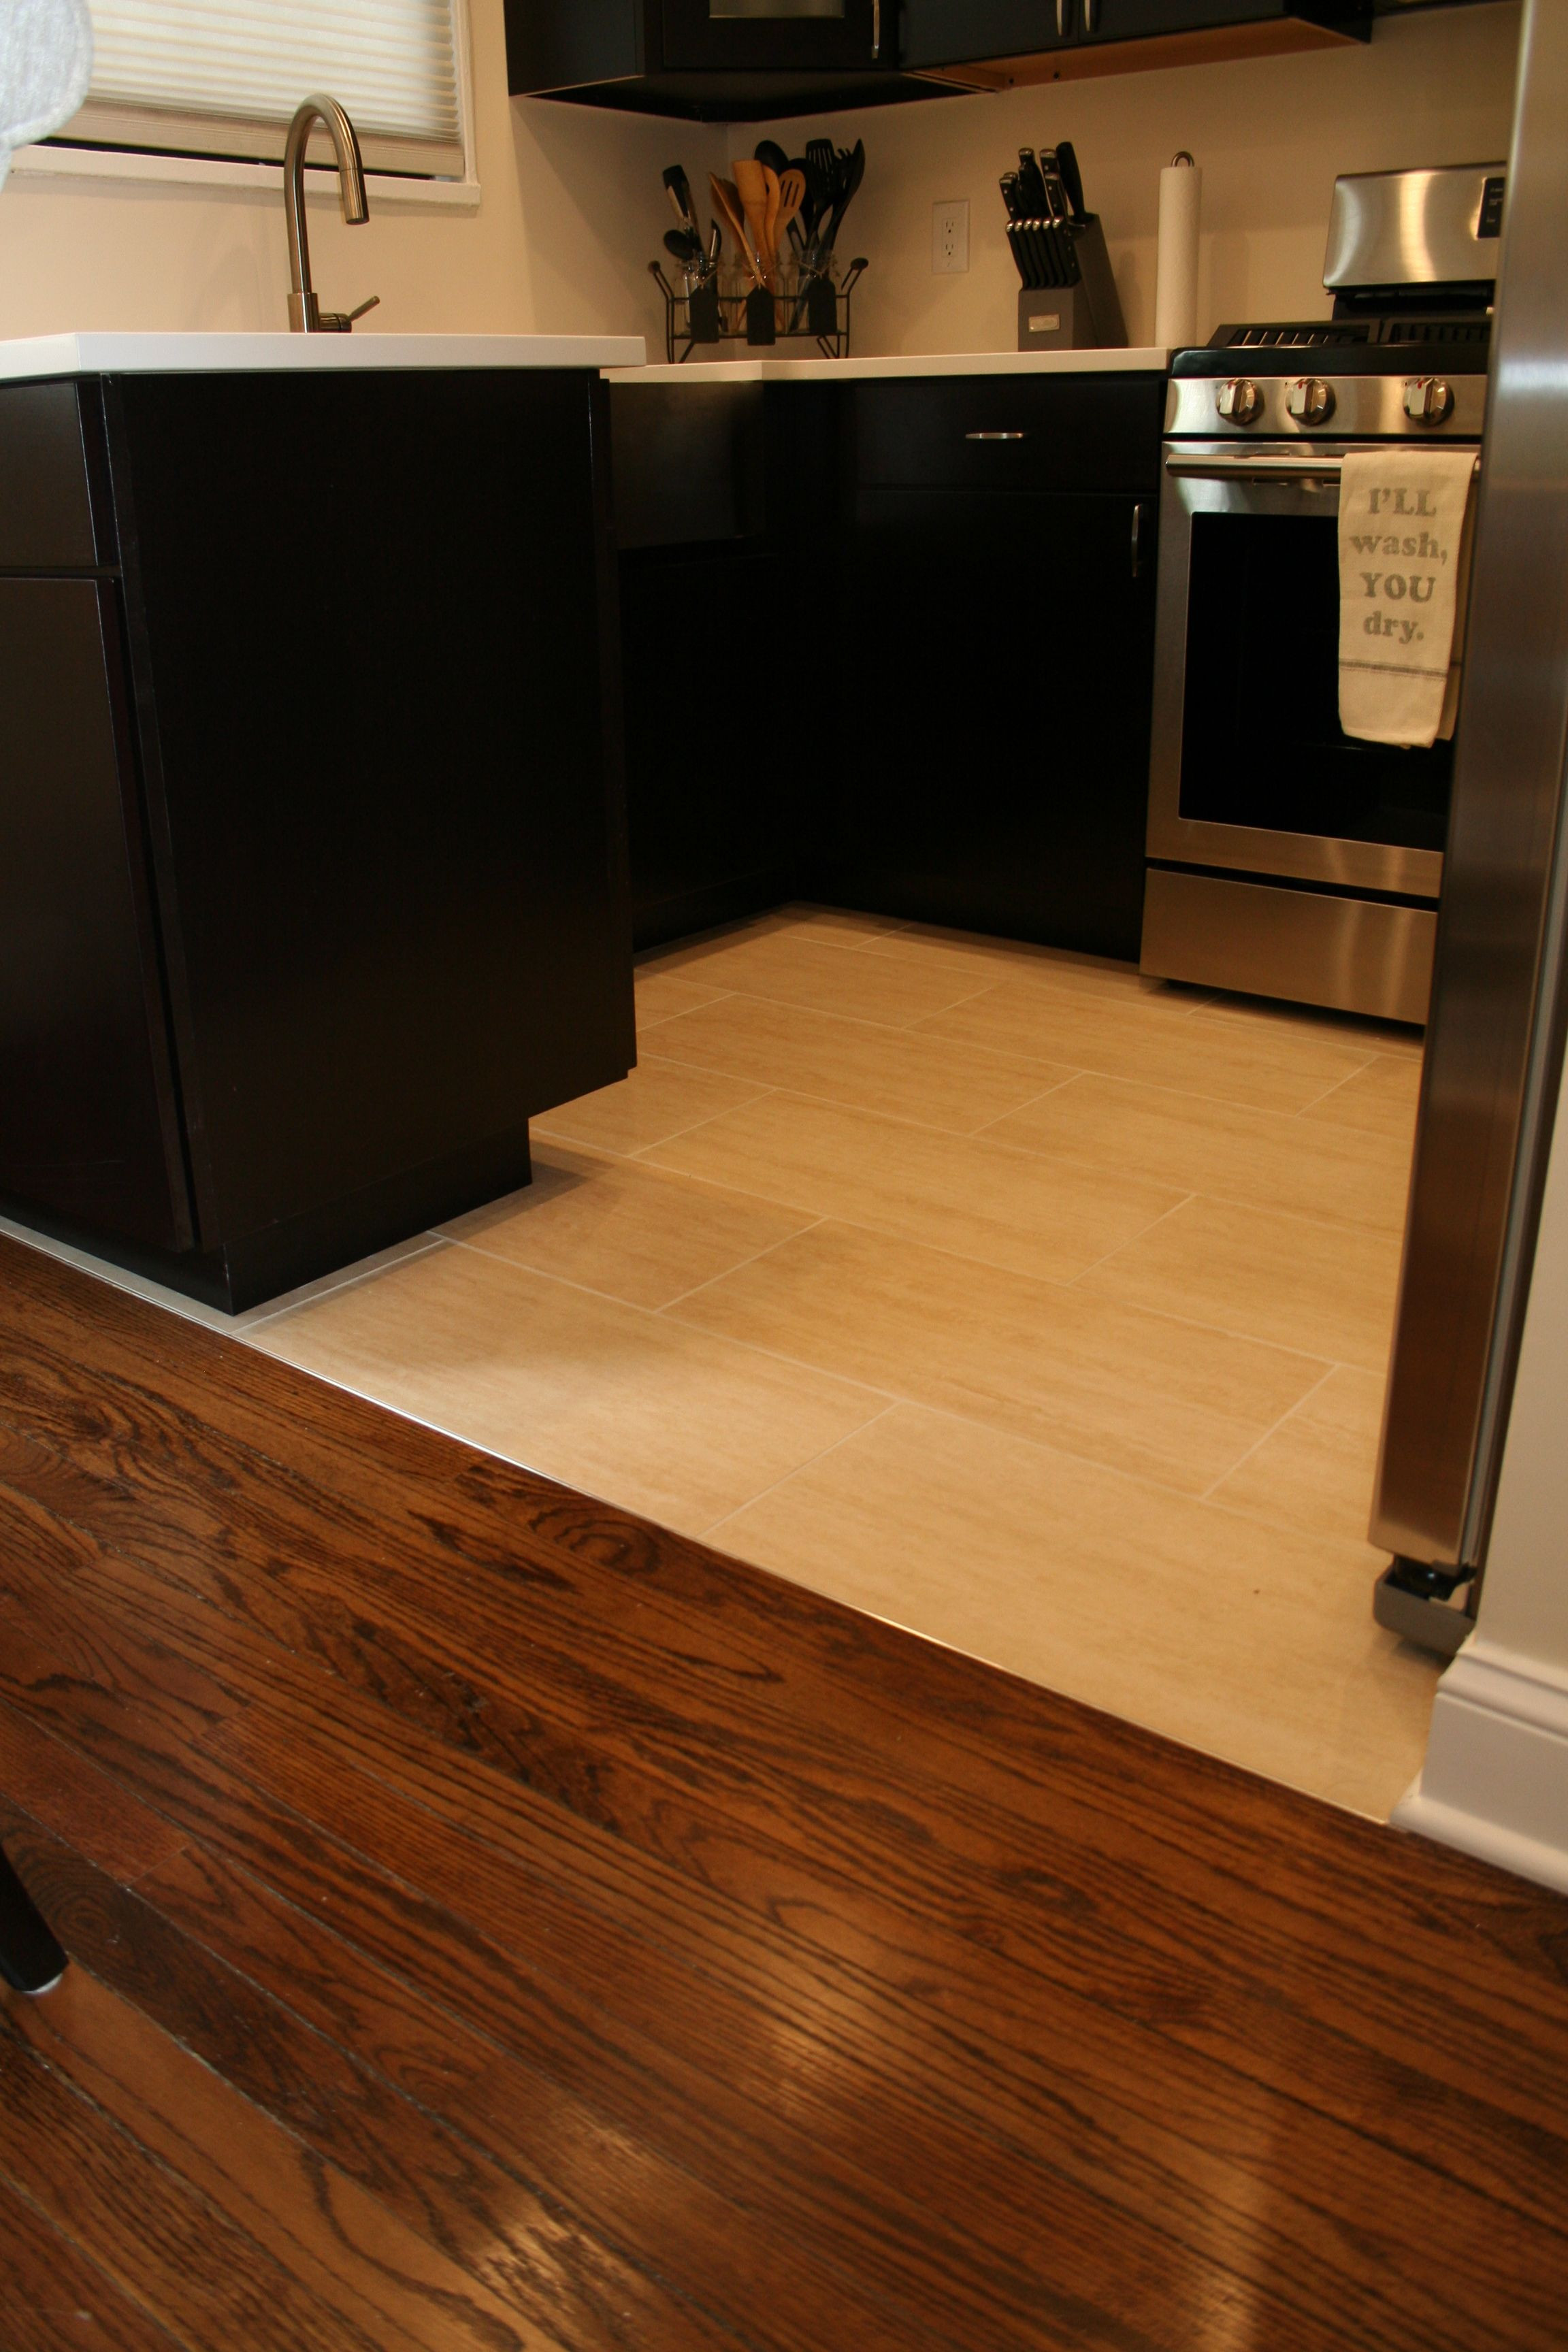 engineered hardwood flooring reviews 2017 of laminate flooring vs wood floor with laminate flooring vs wood transition from tile to wood floors light to dark flooring